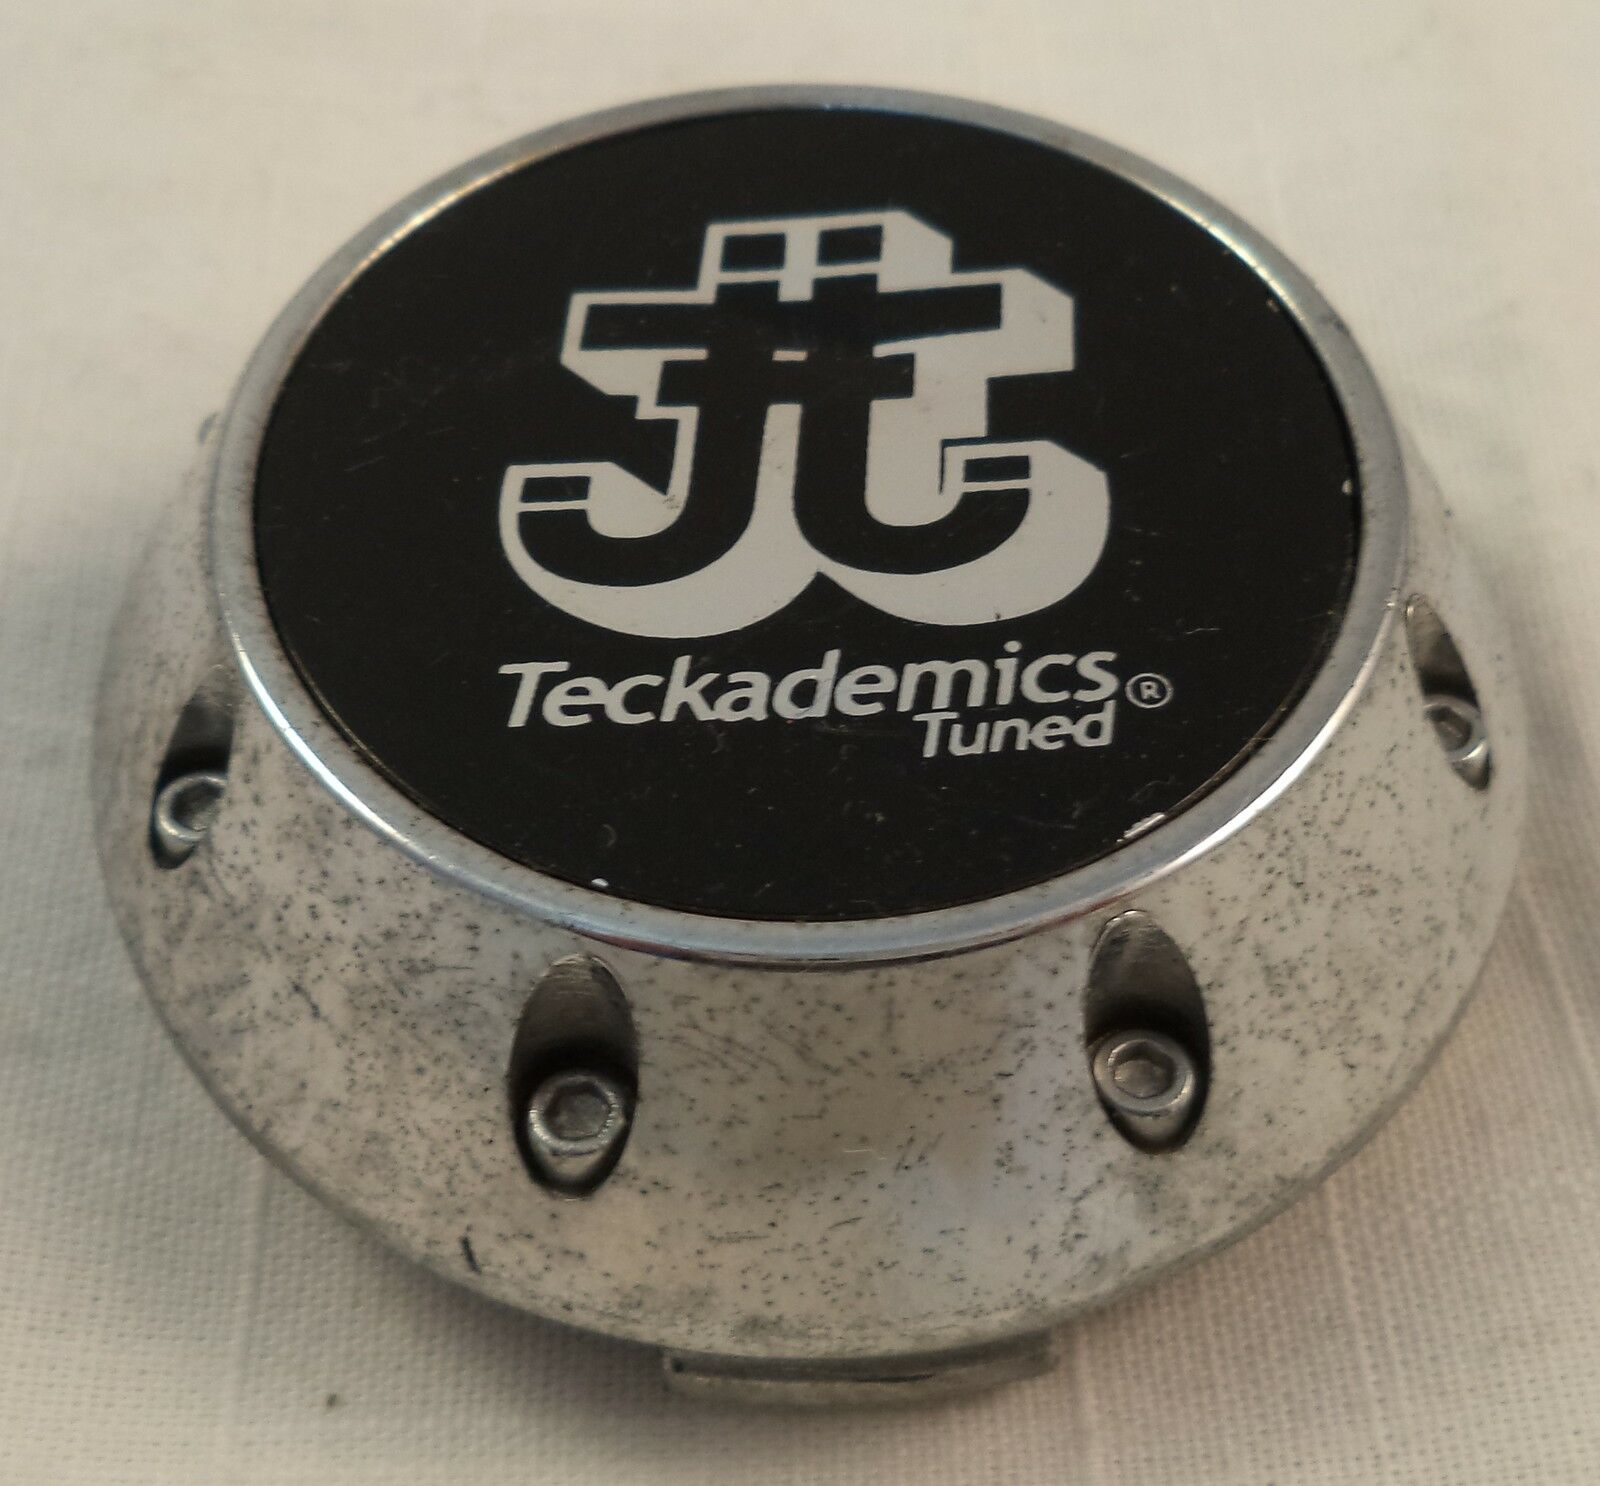 Teckademics Tuned Wheels Chrome Custom Wheel Center Cap Caps 1